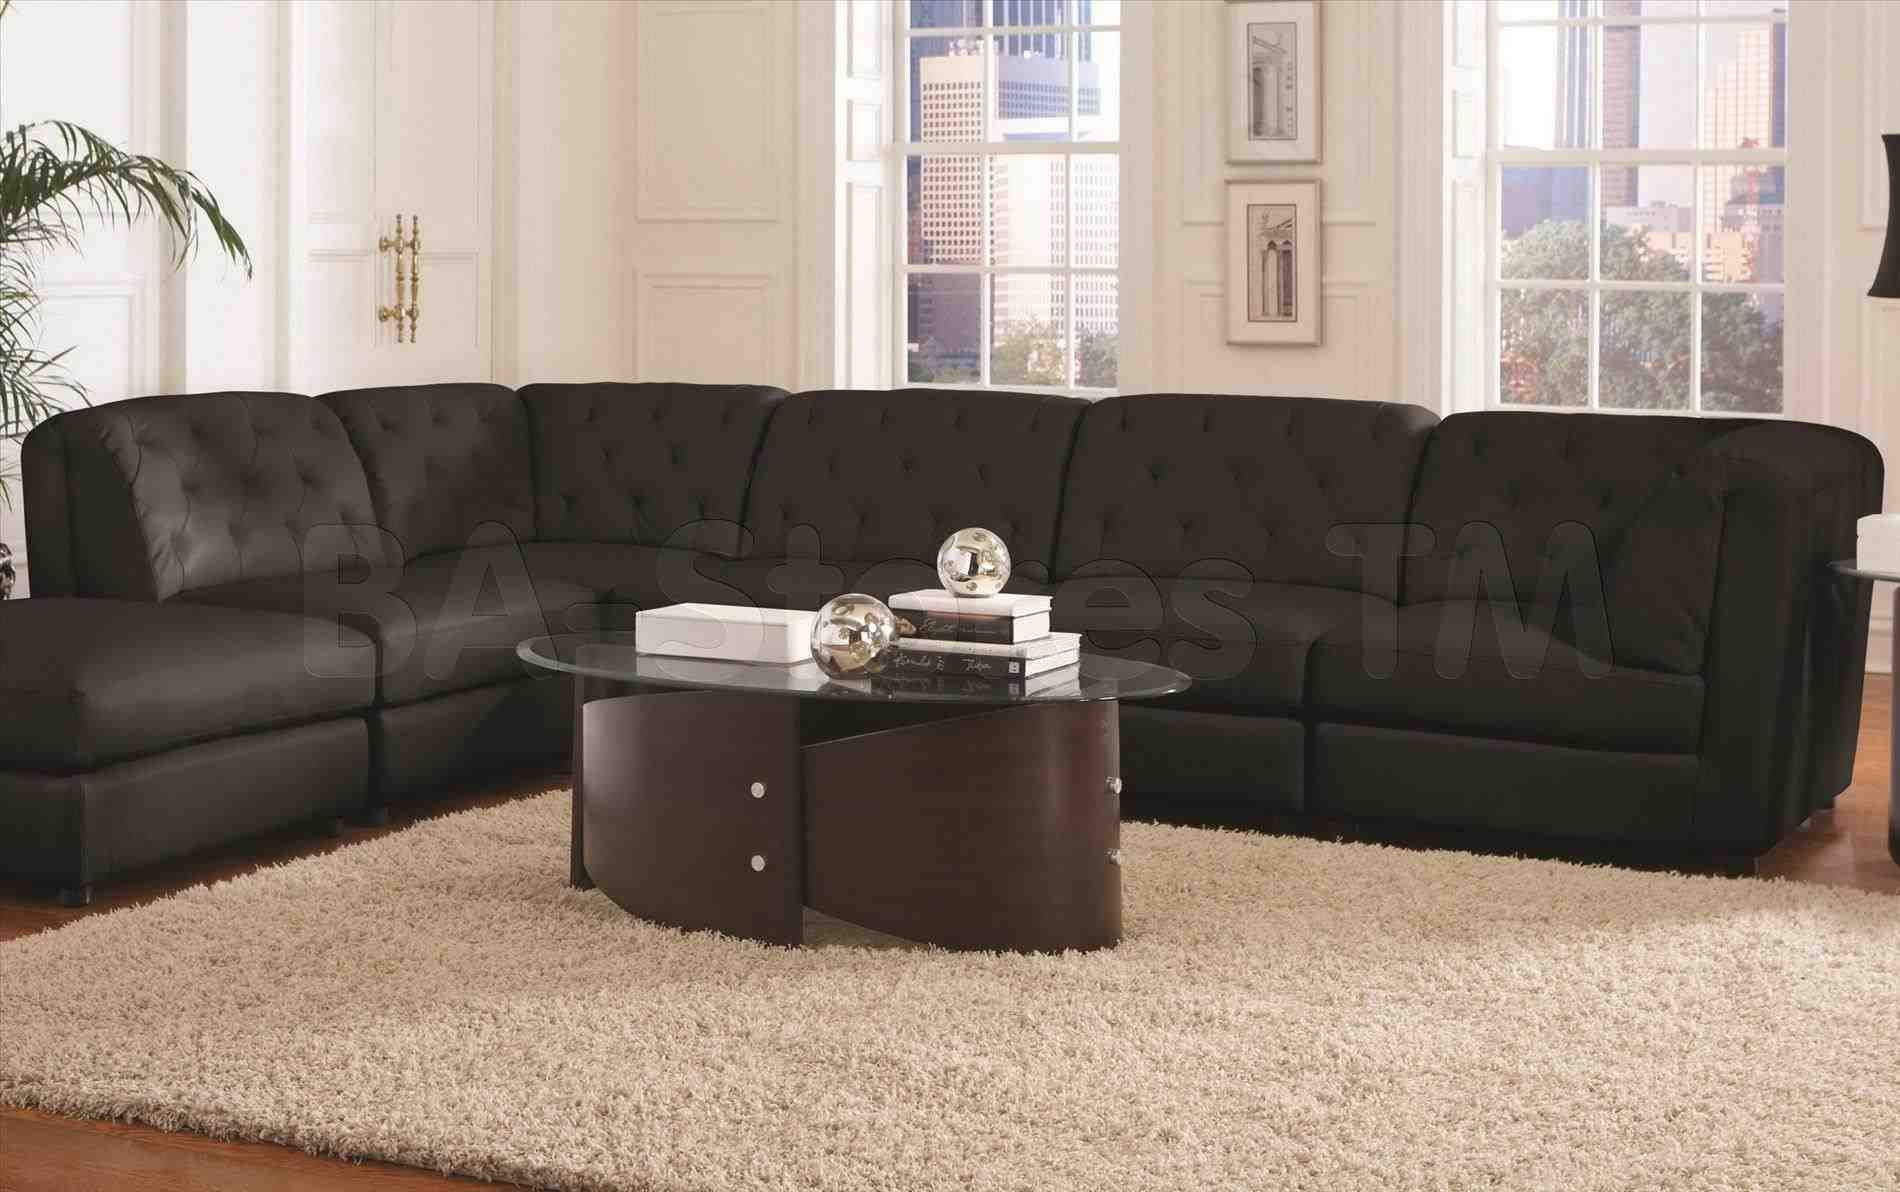 Cheap Sectionals Austin Tx Modular Sectional Sofa Sectional Sofa Sale Affordable Furniture